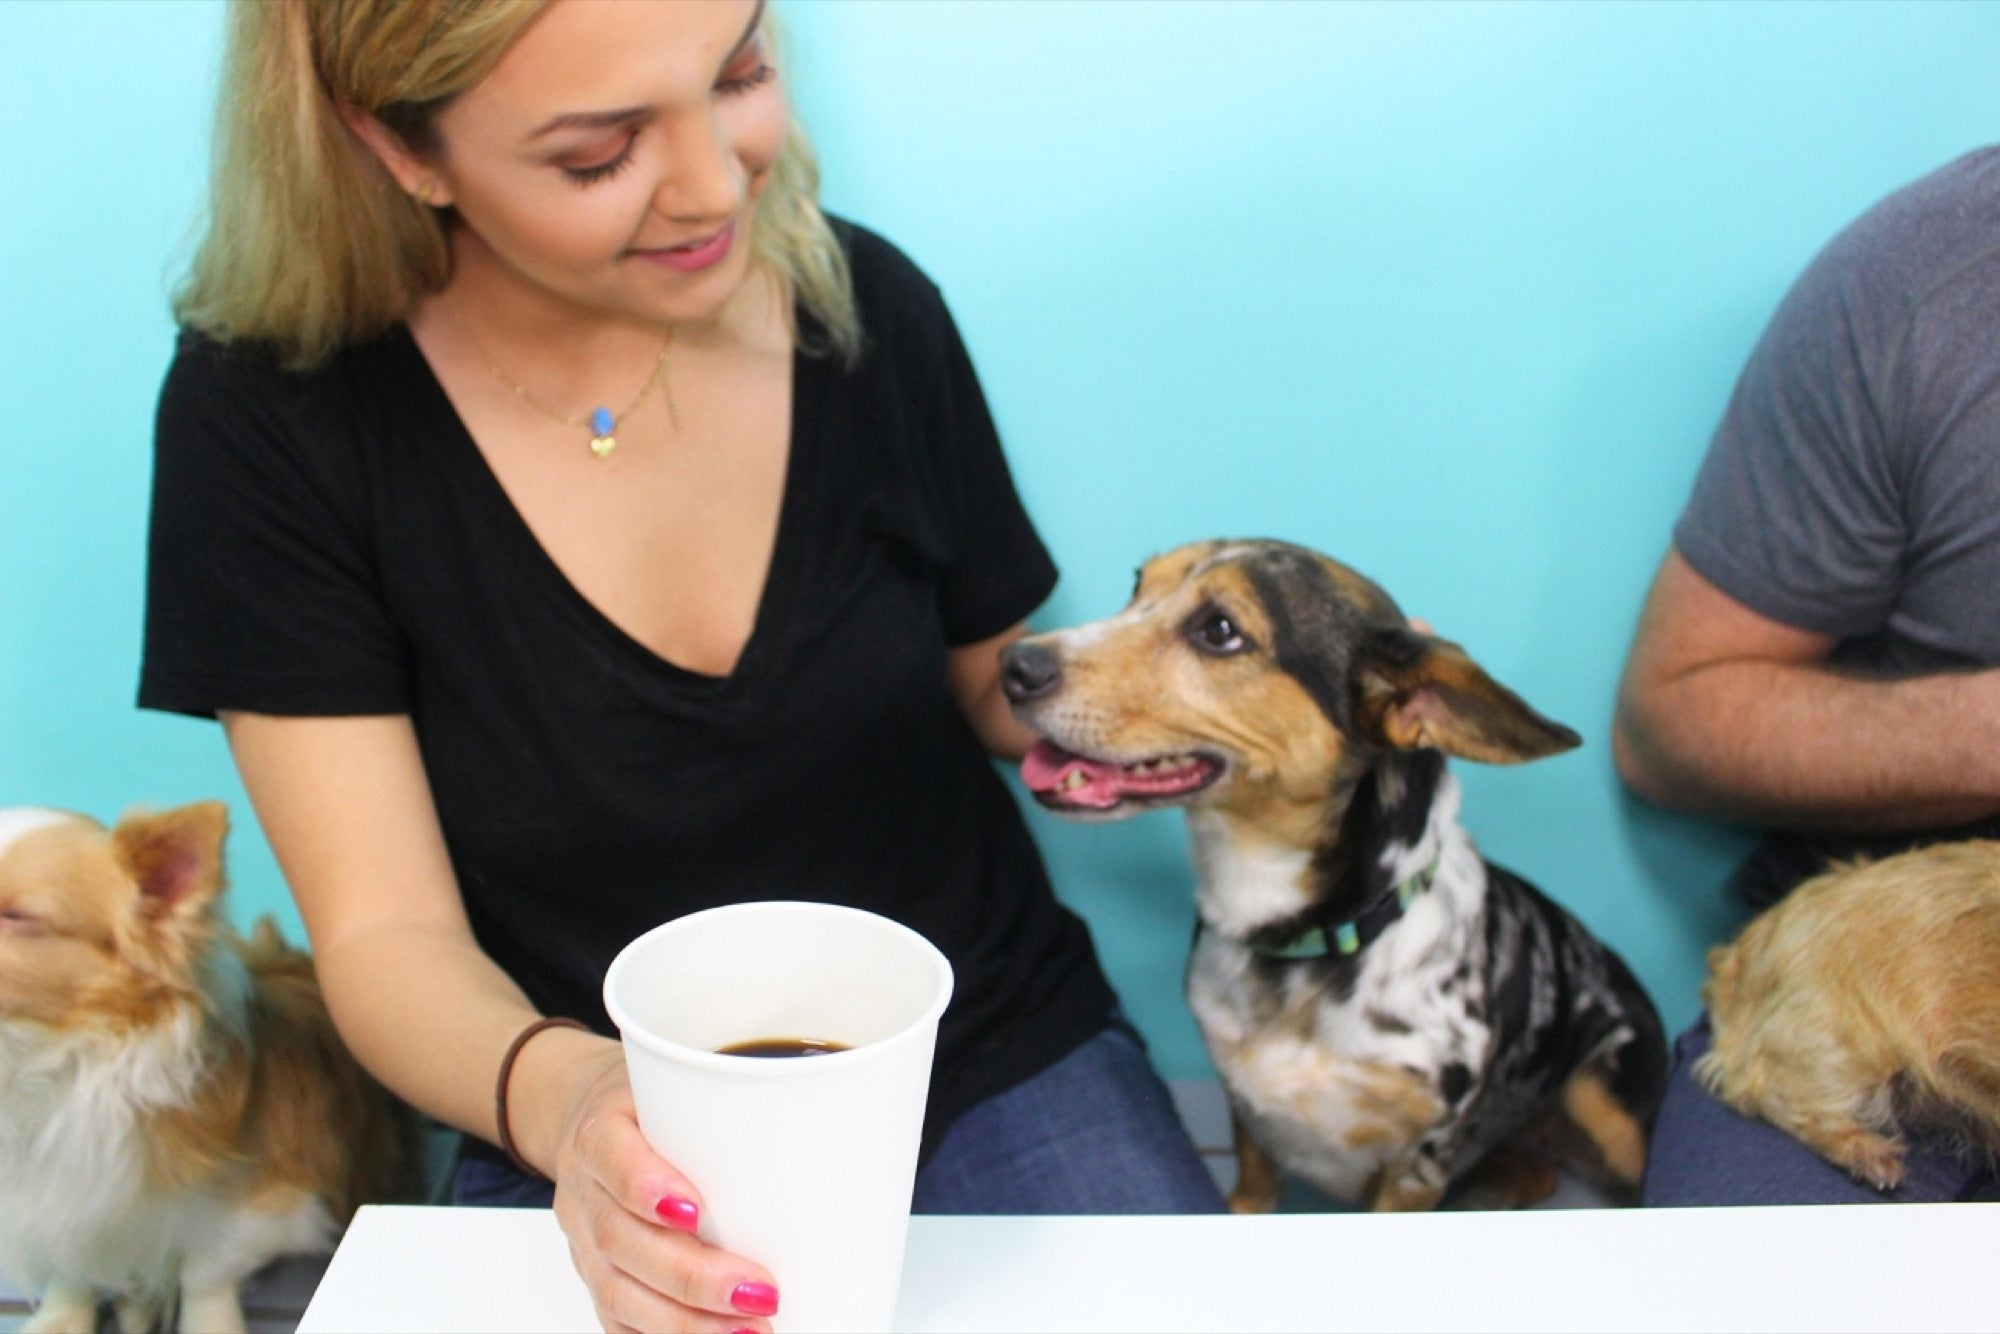 Want to Run a Pet Café? These Founders' Tips Can Help